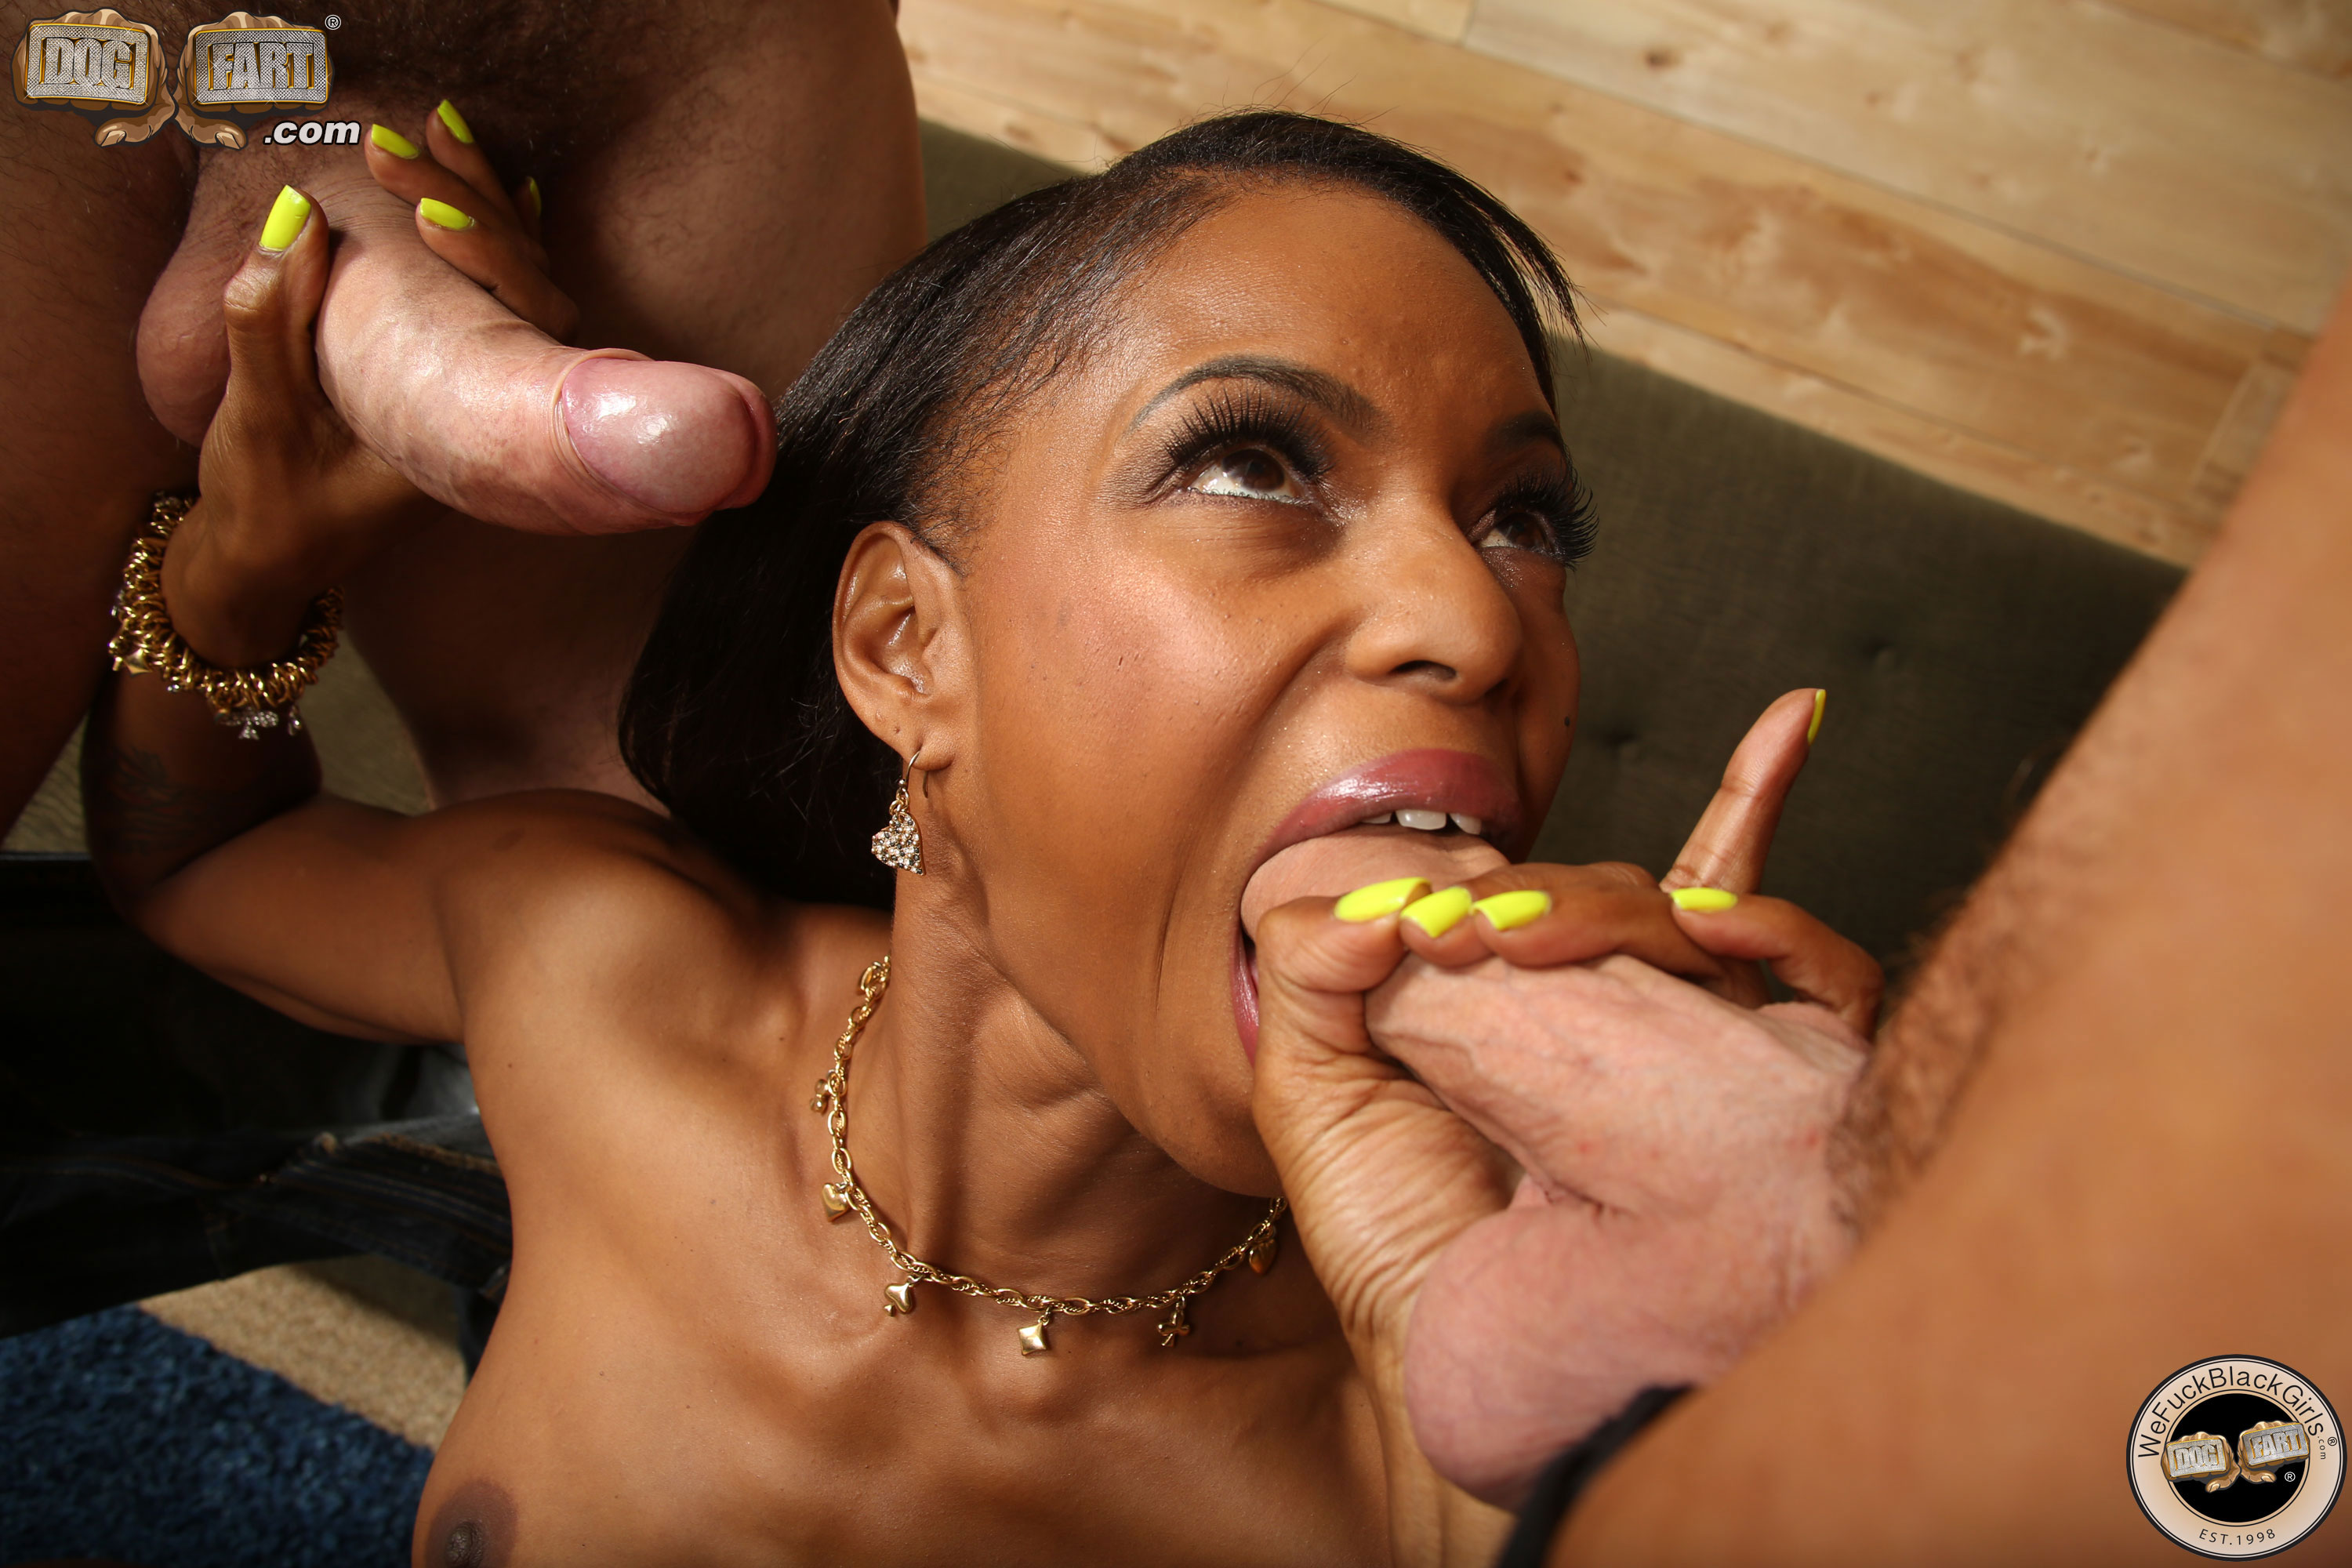 Marie luv swallows loads form the bowl